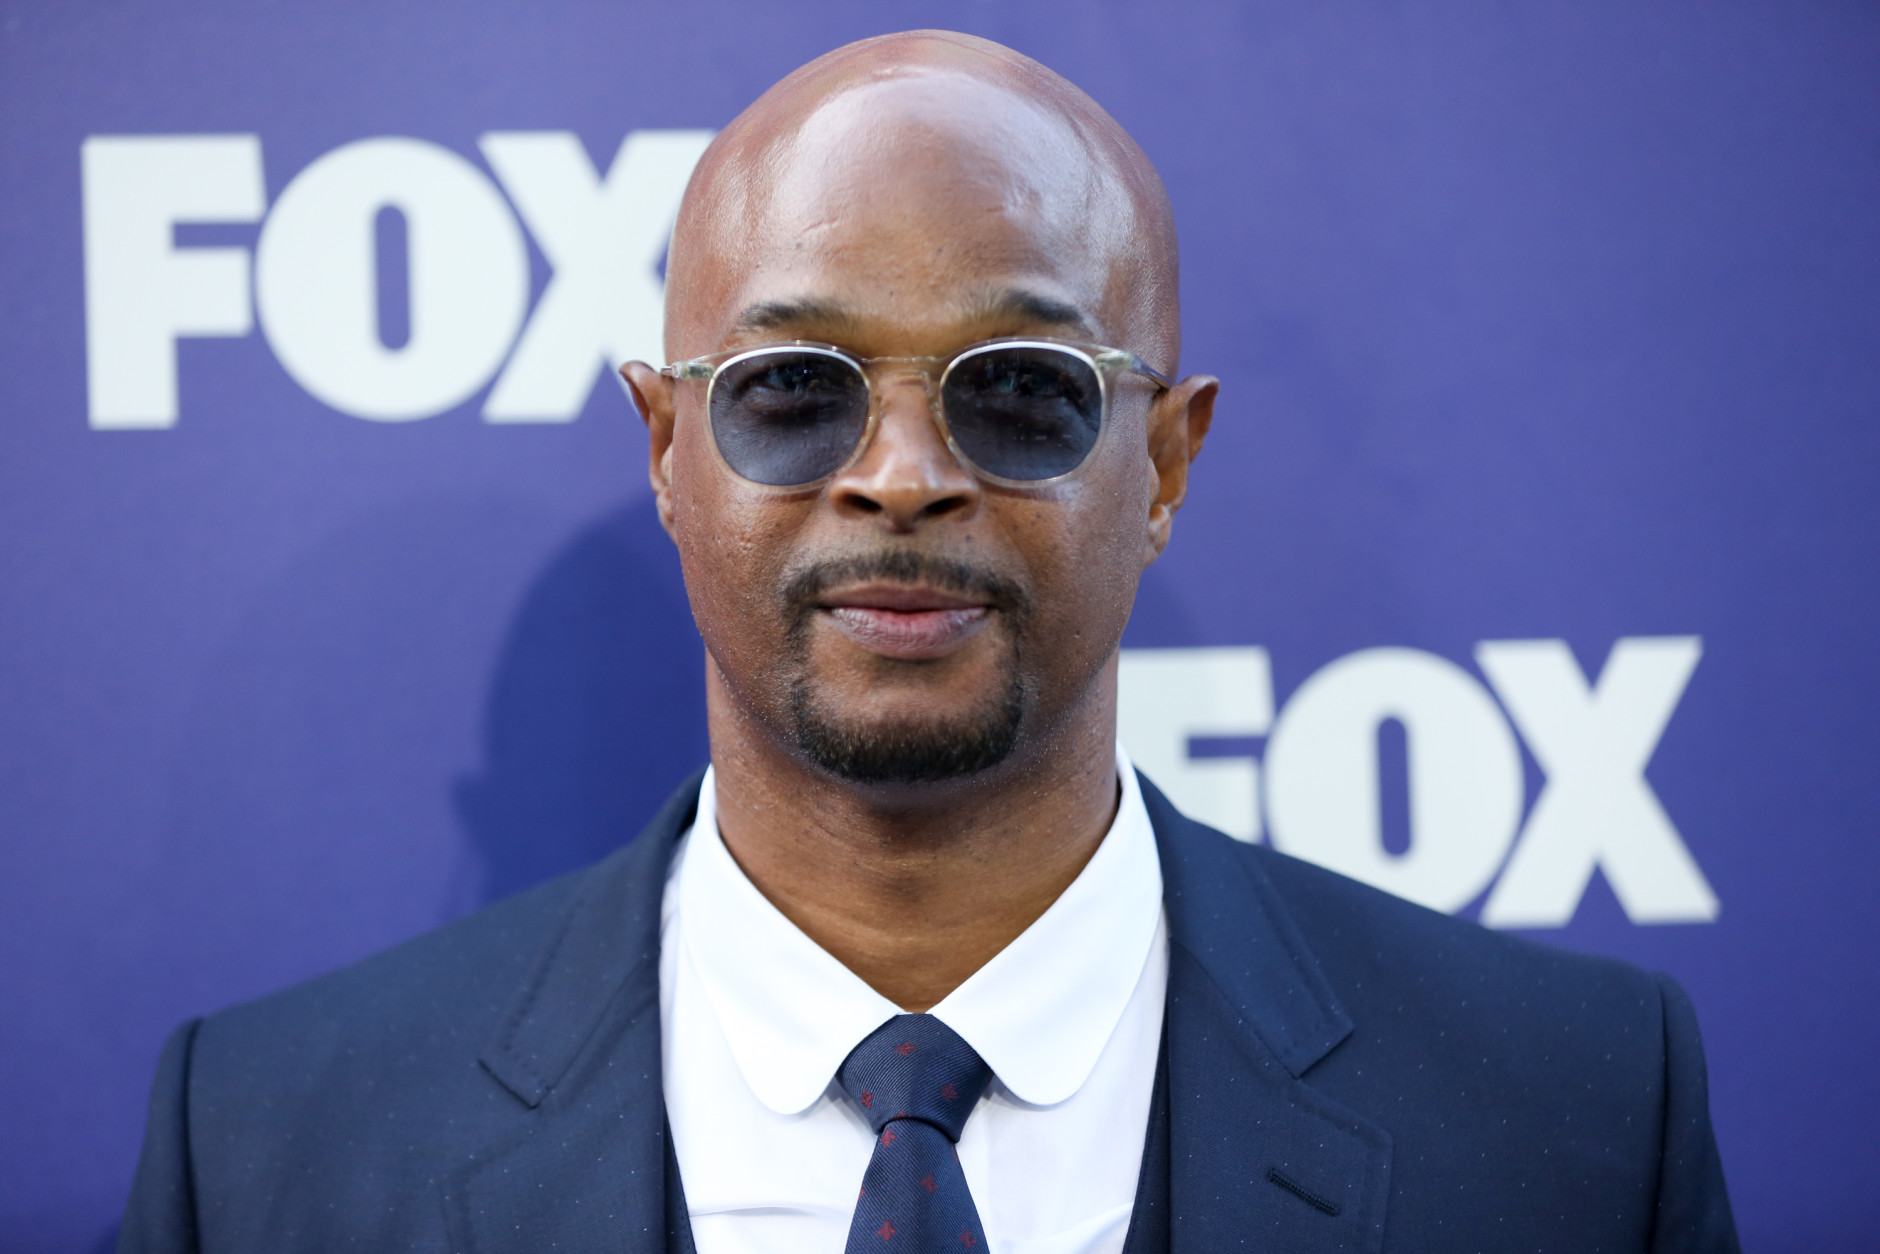 """Damon Wayans, a cast member in the television series """"Lethal Weapon,"""" arrives at the Fox Television Critics Association summer press tour on Monday, Aug. 8, 2016, in Beverly Hills, Calif. (Photo by Rich Fury/Invision/AP)"""